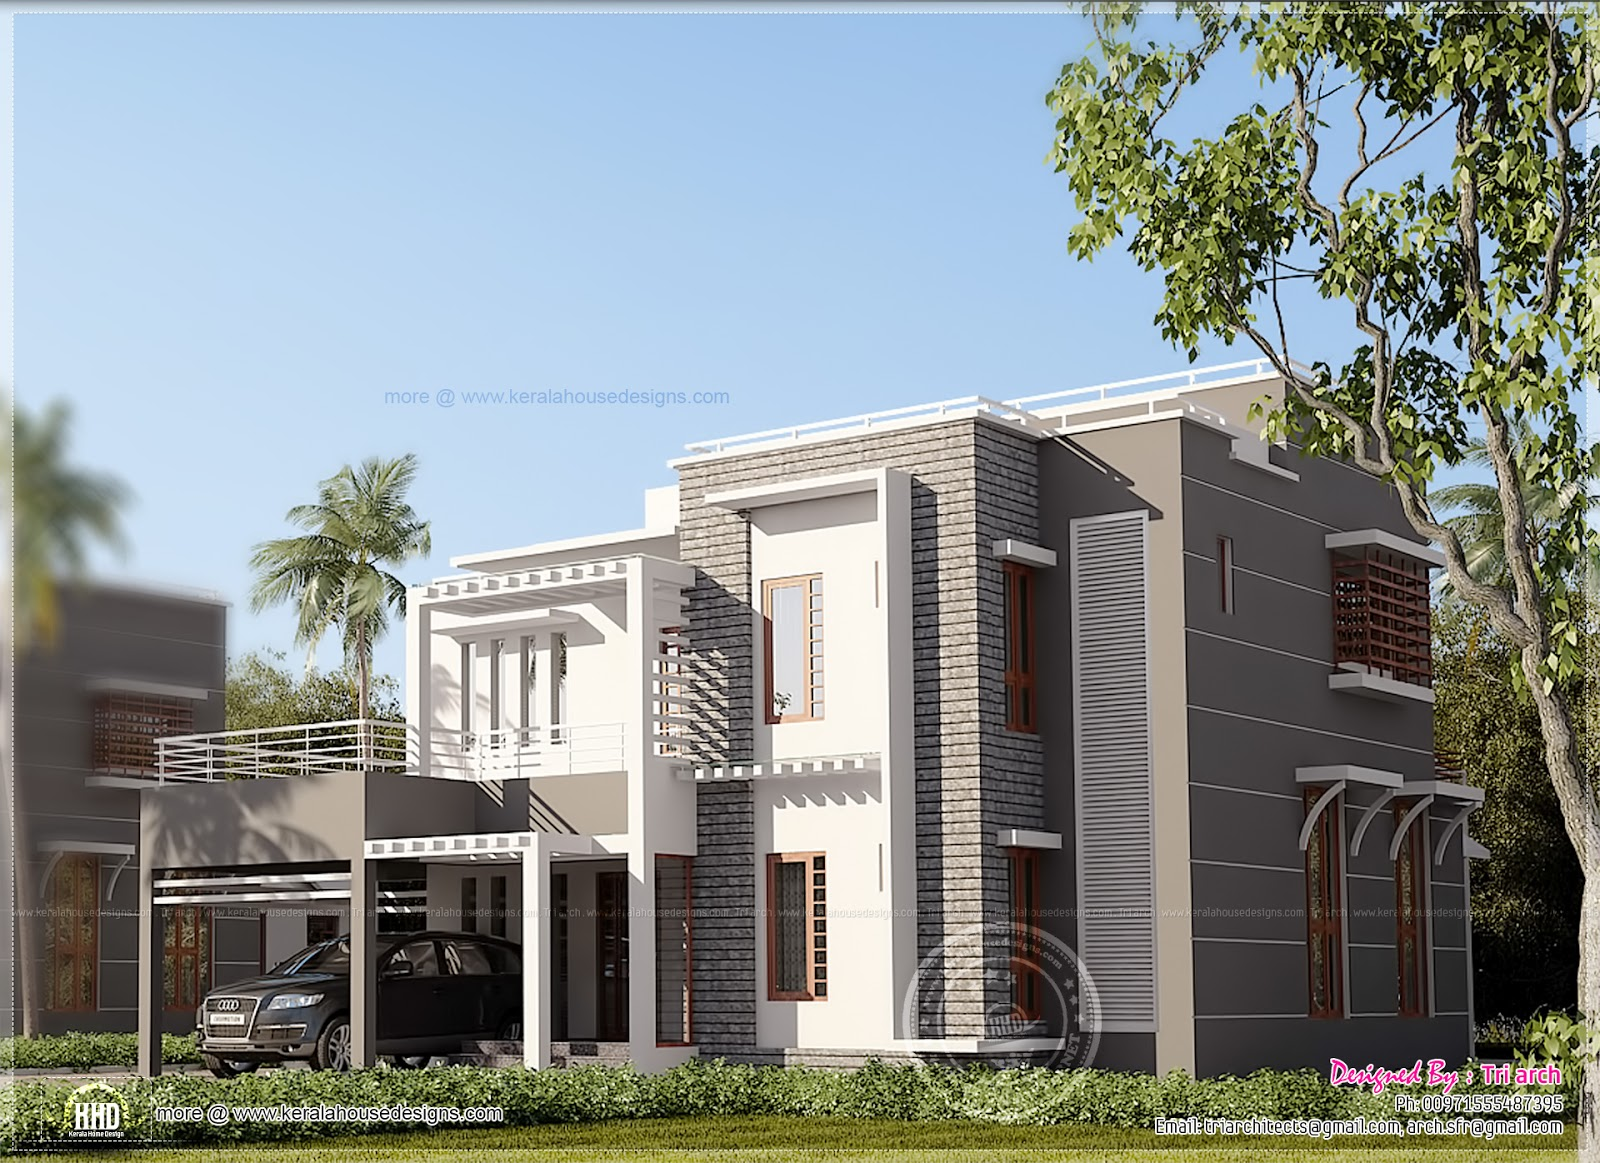 Contemporary home design in kerala kerala home design for Contemporary style homes in kerala